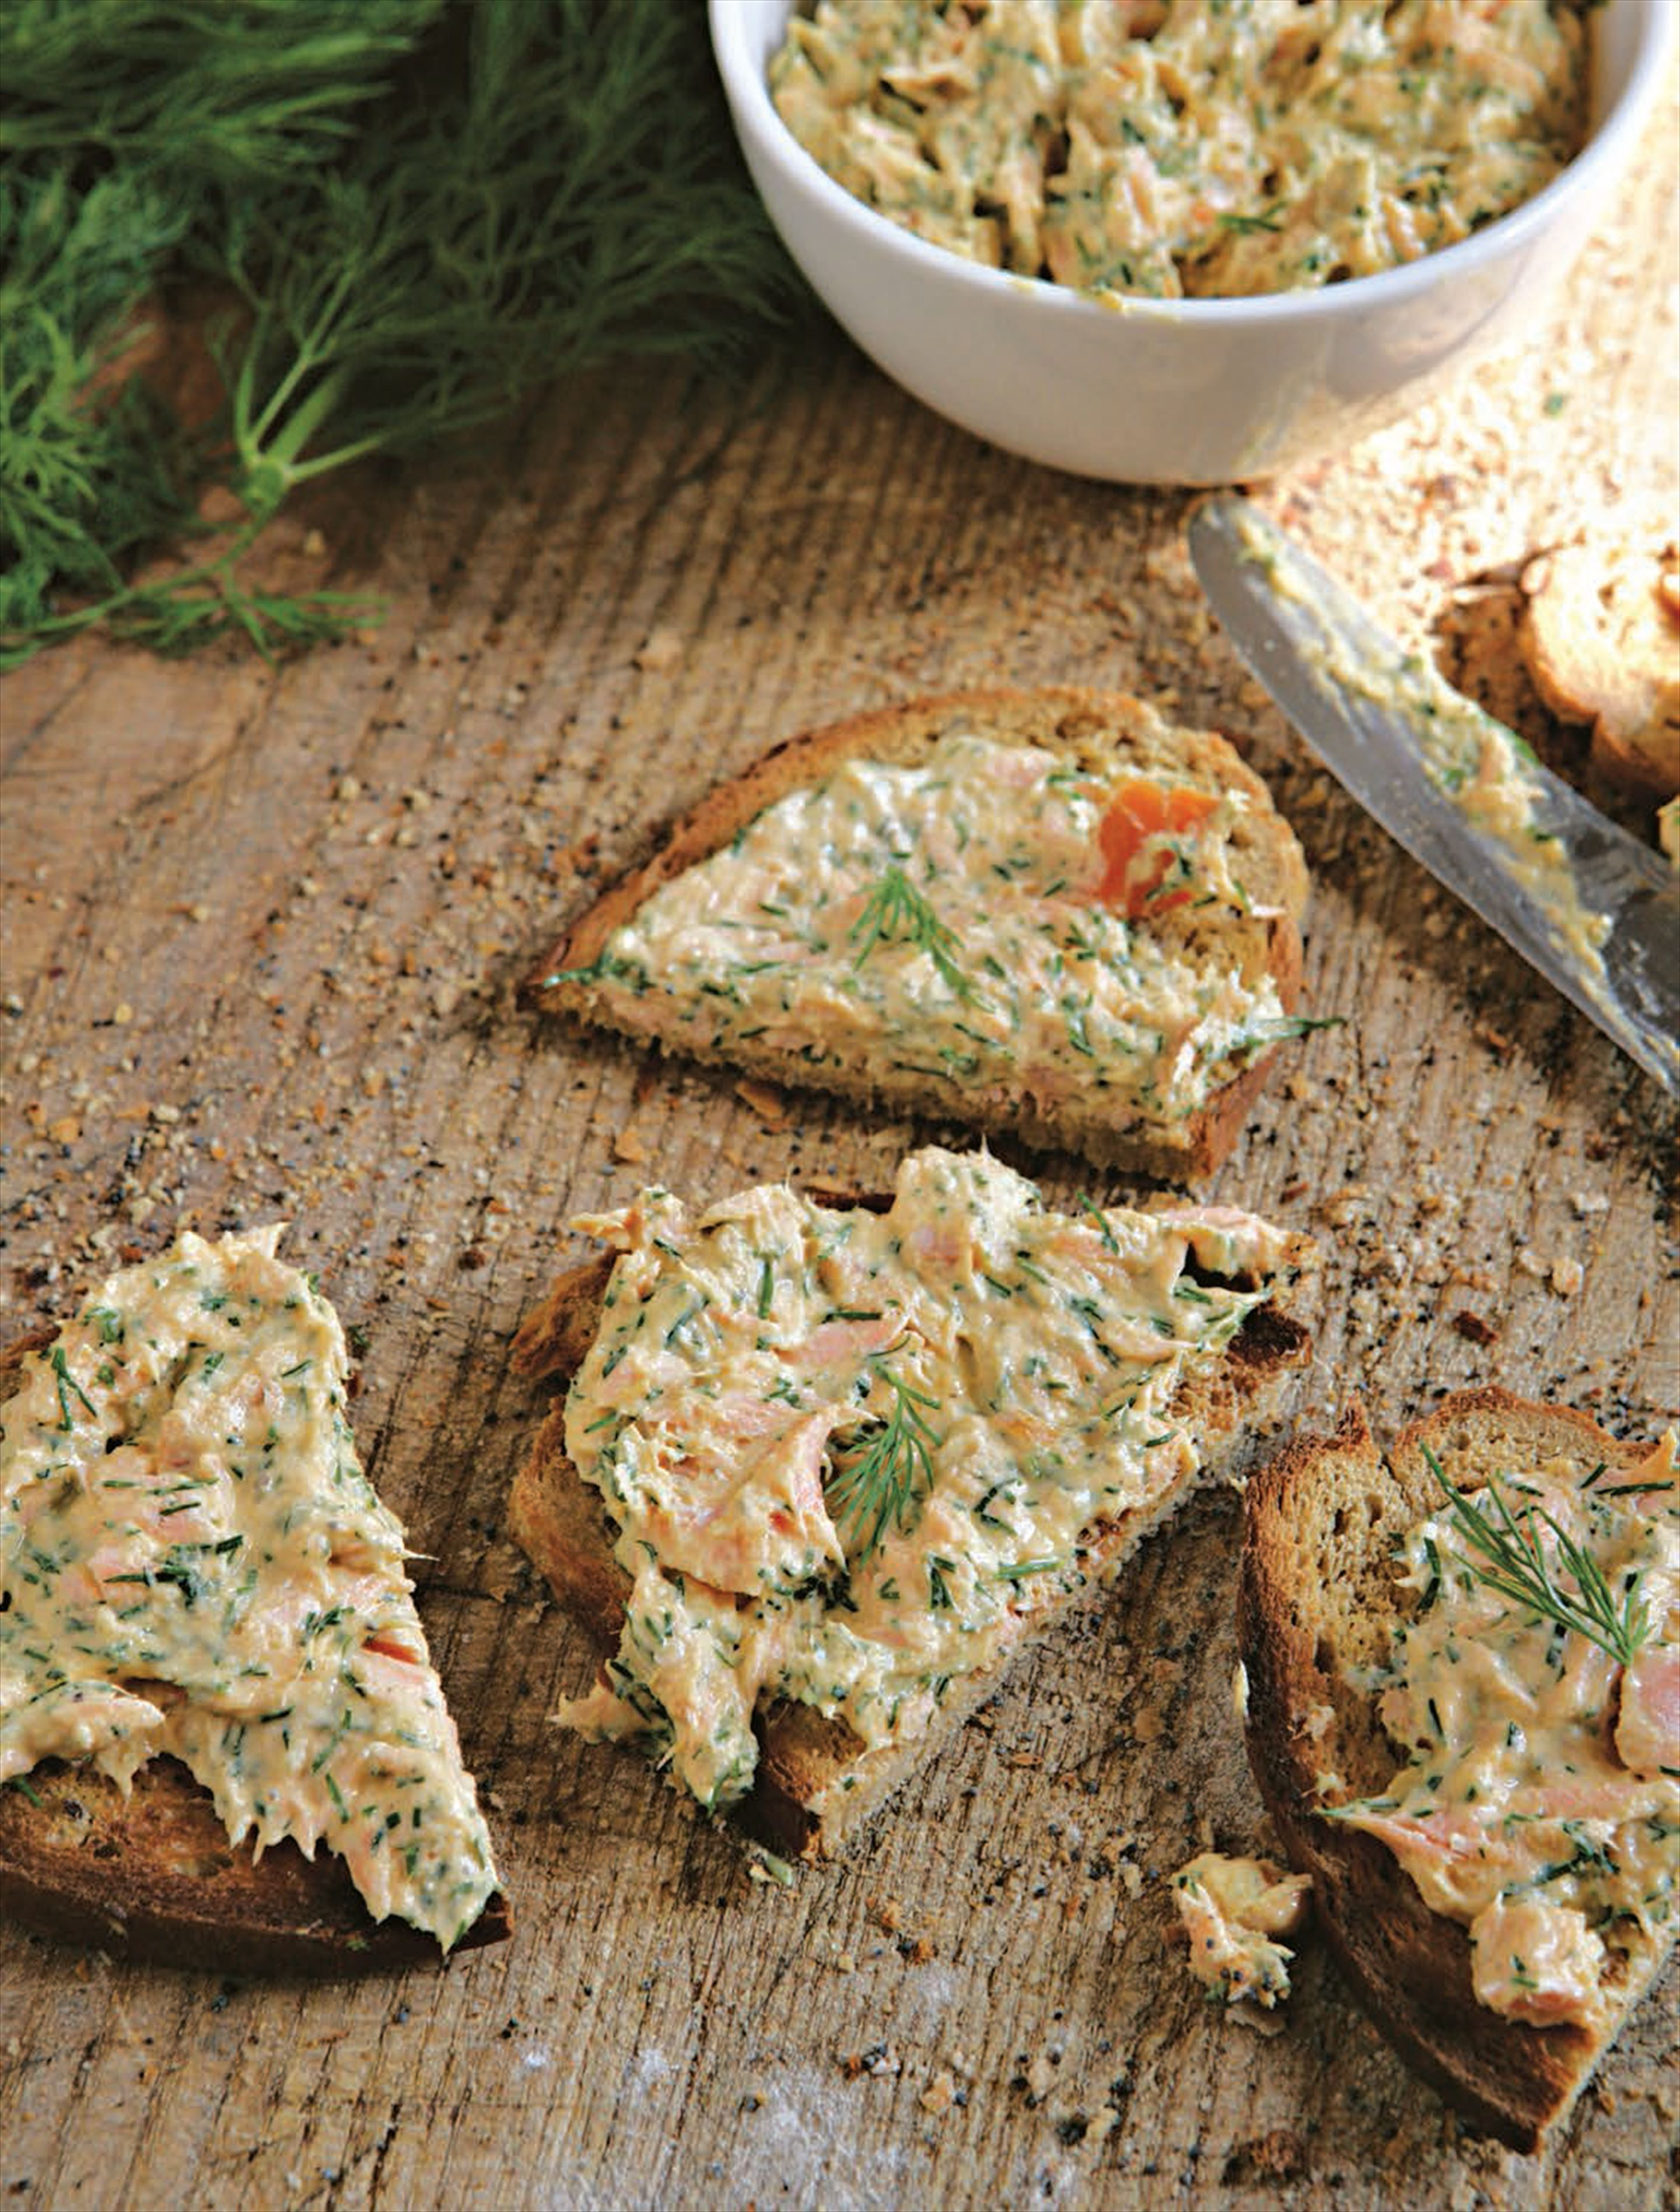 Hot-smoked trout pâté